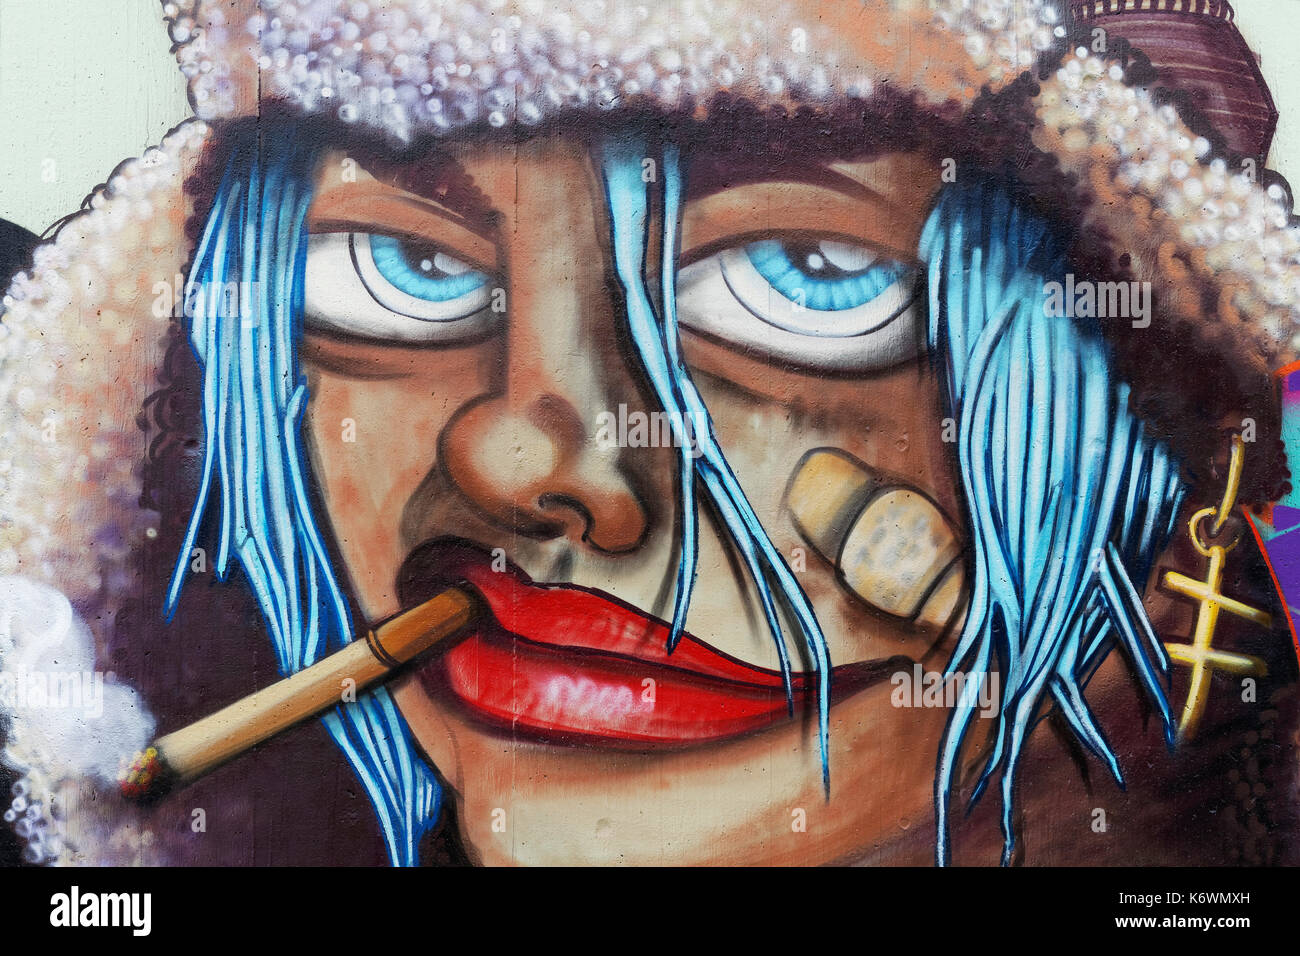 Face of a woman with cigarette and bandaid on cheek graffiti street art düsseldorf north rhine westphalia germany